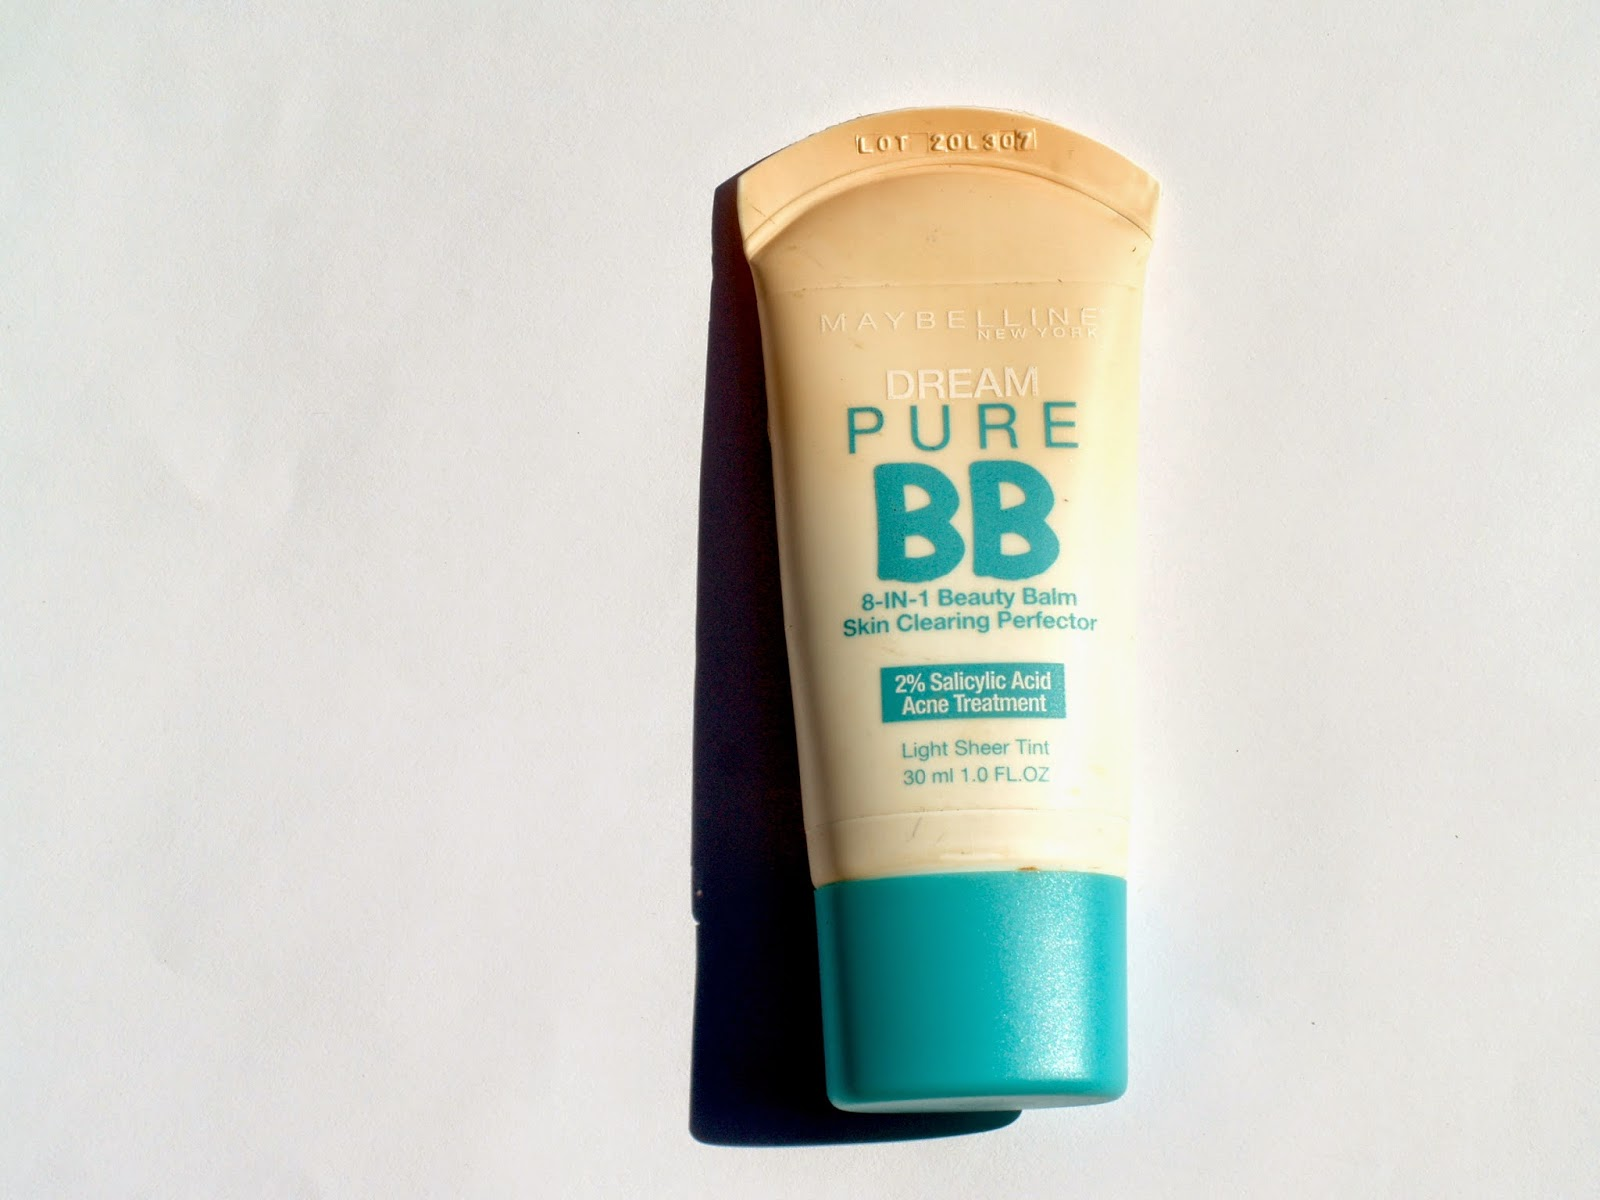 Maybelline Dream Pure BB Cream review